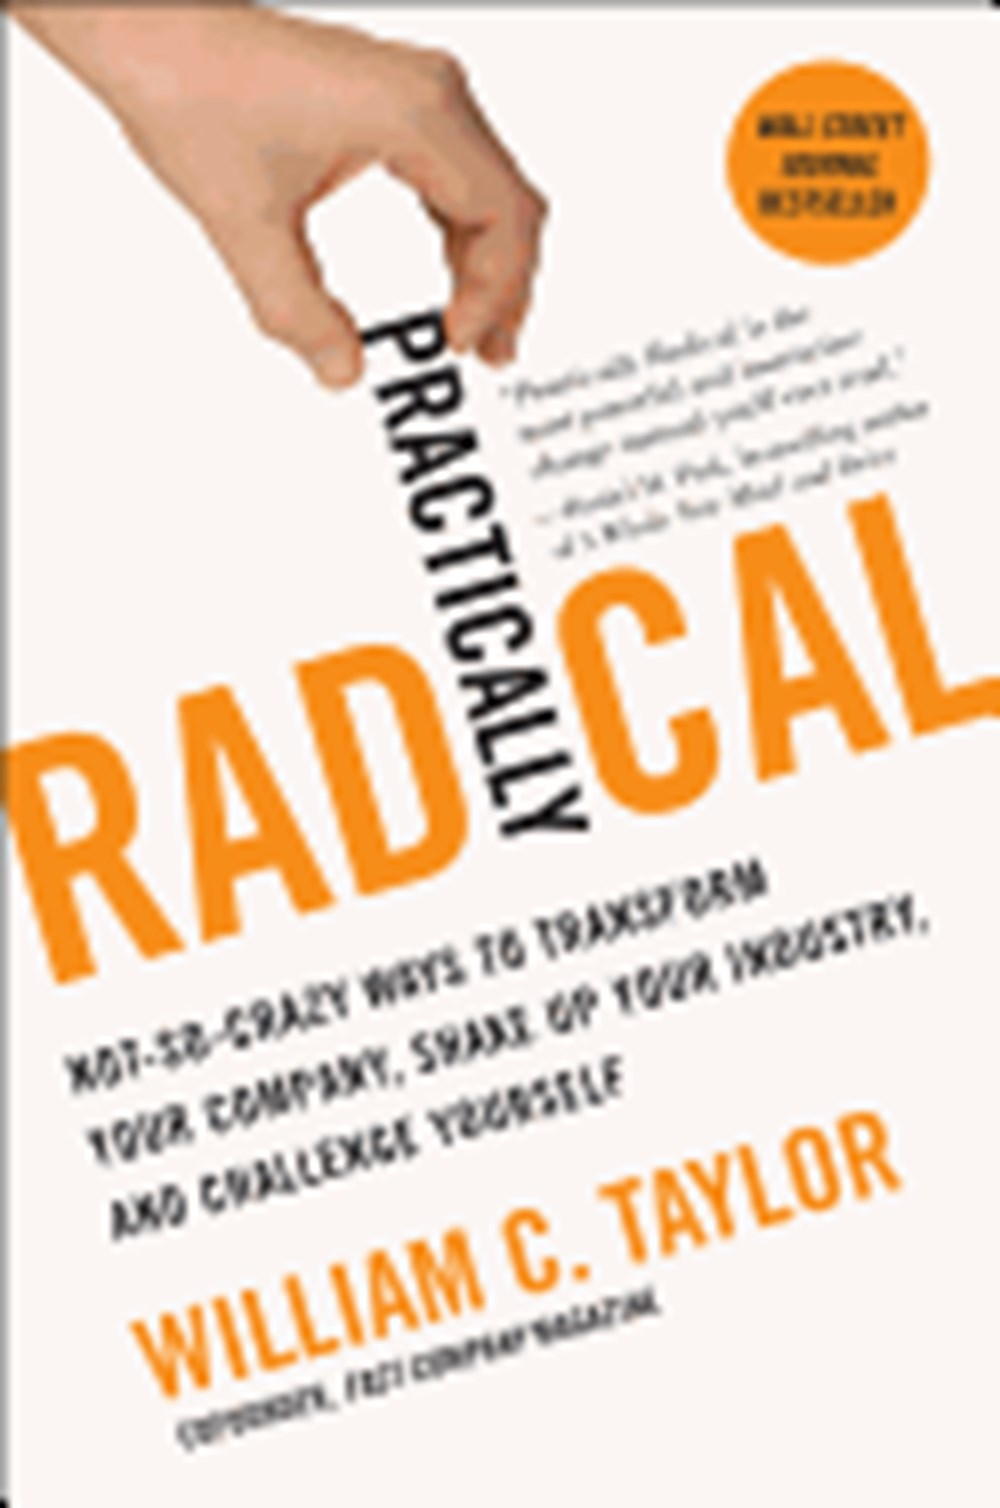 Practically Radical Not-So-Crazy Ways to Transform Your Company, Shake Up Your Industry, and Challen